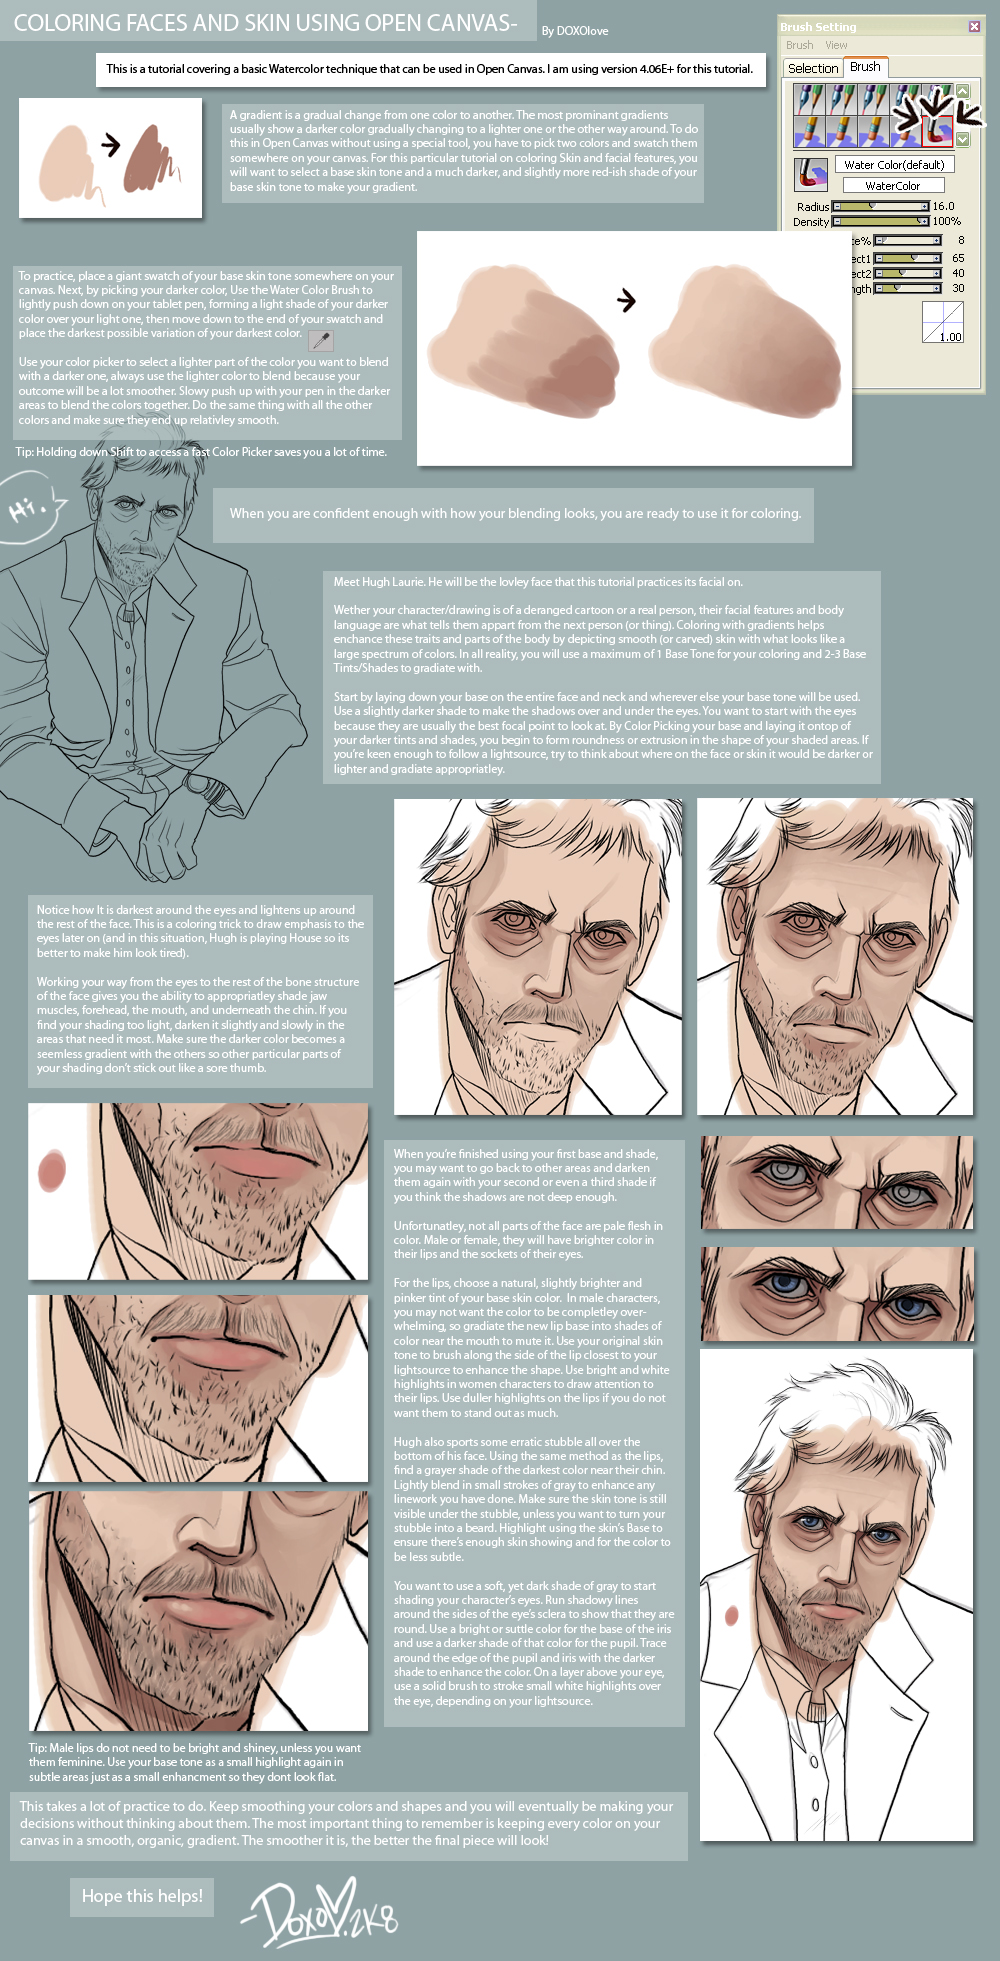 COLORING SKIN n FACES Tutorial by DOXOPHILIA on DeviantArt